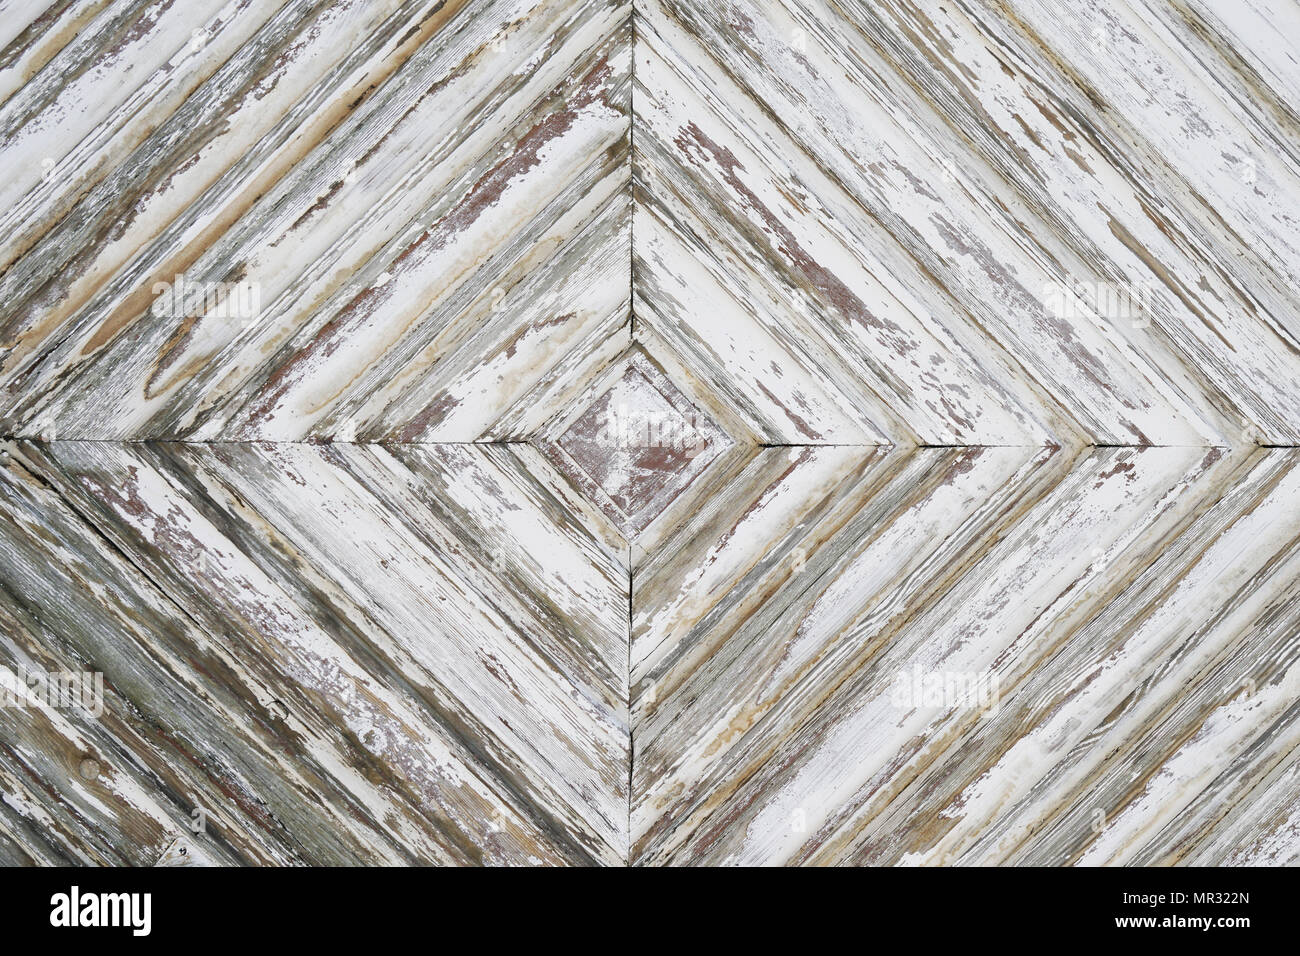 distressed wood paneling background texture pattern, detail of old weathered wooden door with white paint peeling off - Stock Image